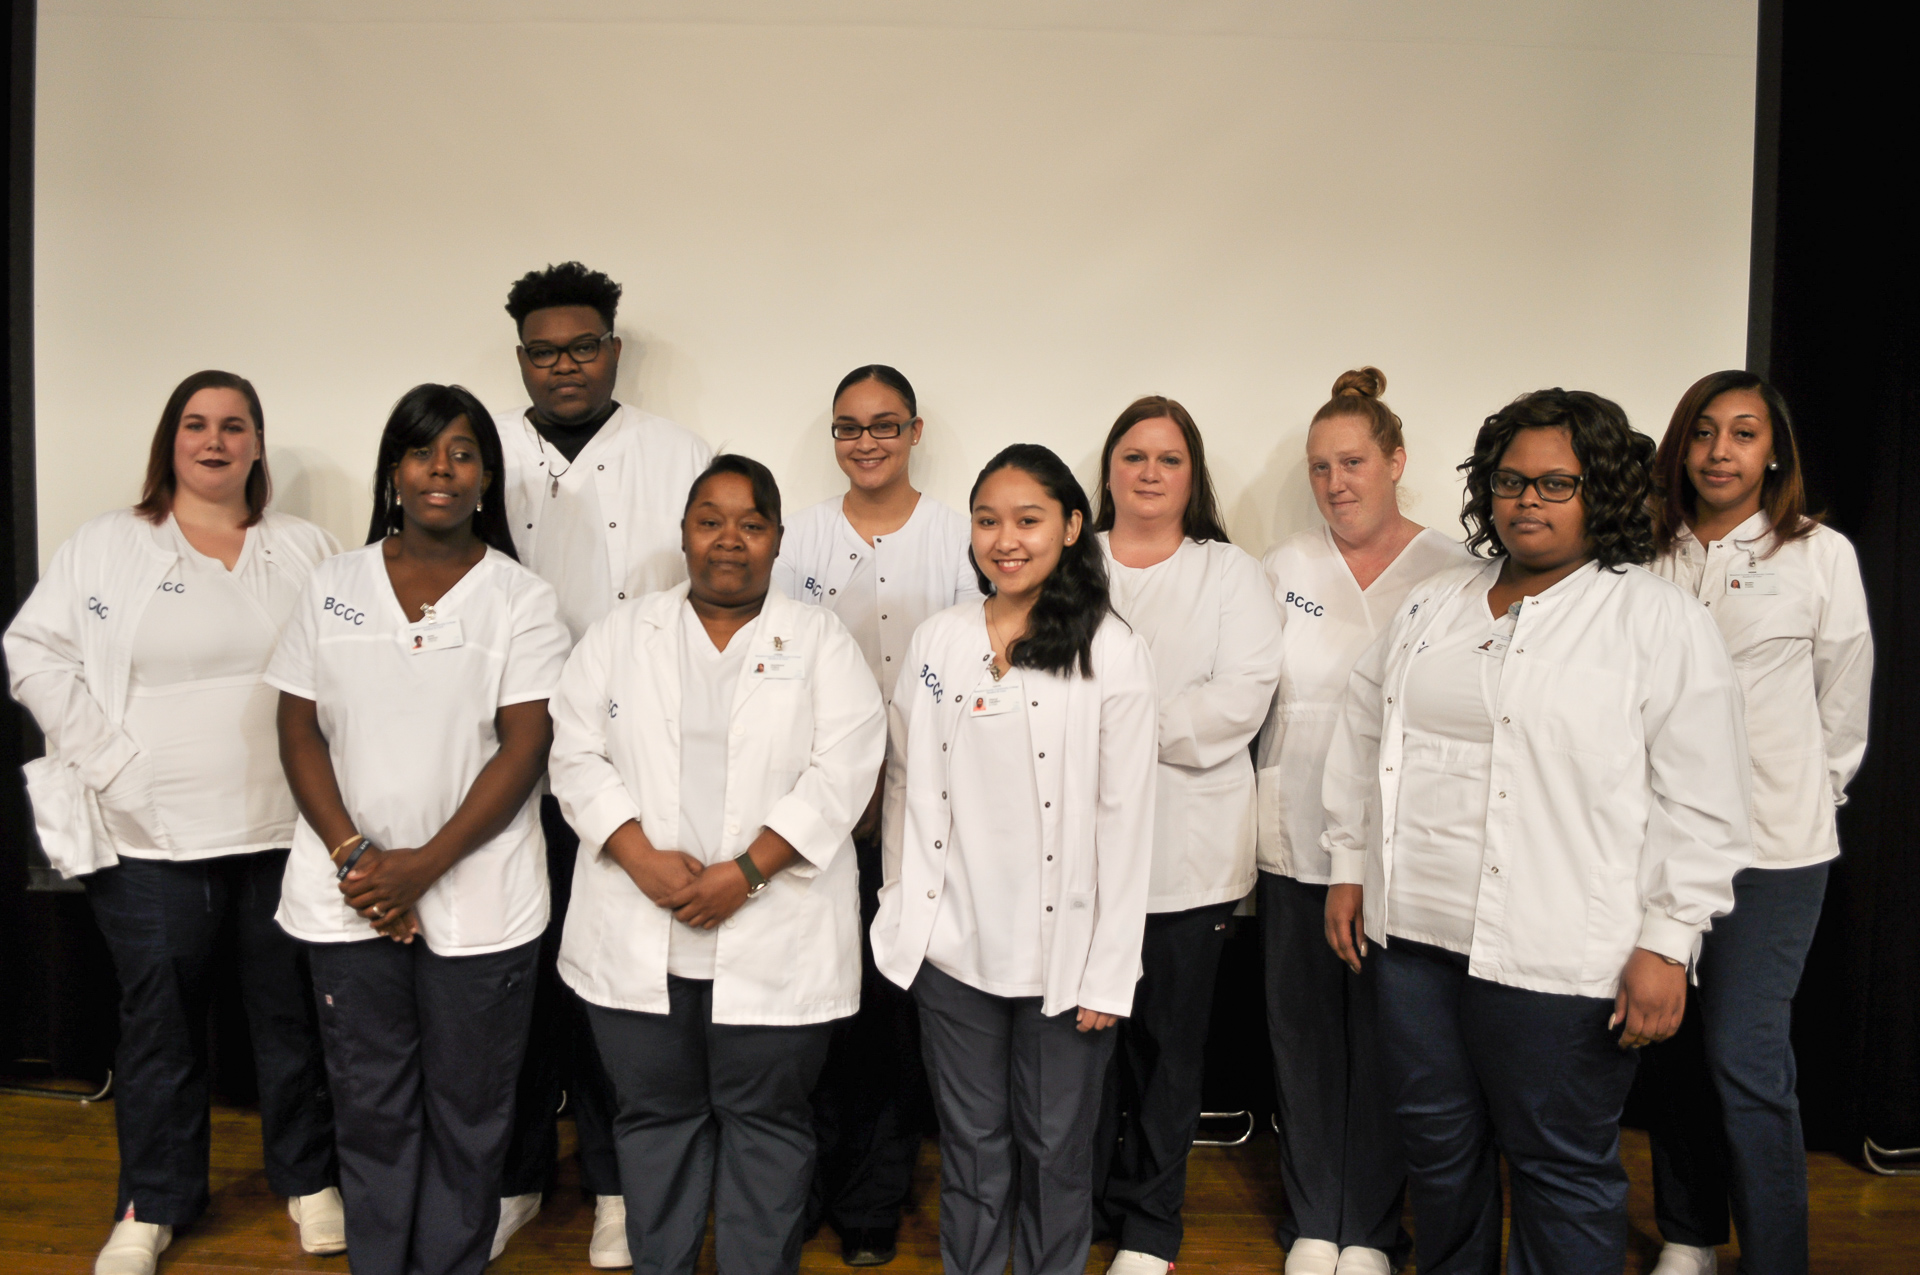 About a dozen students in white coats posing against a white background.